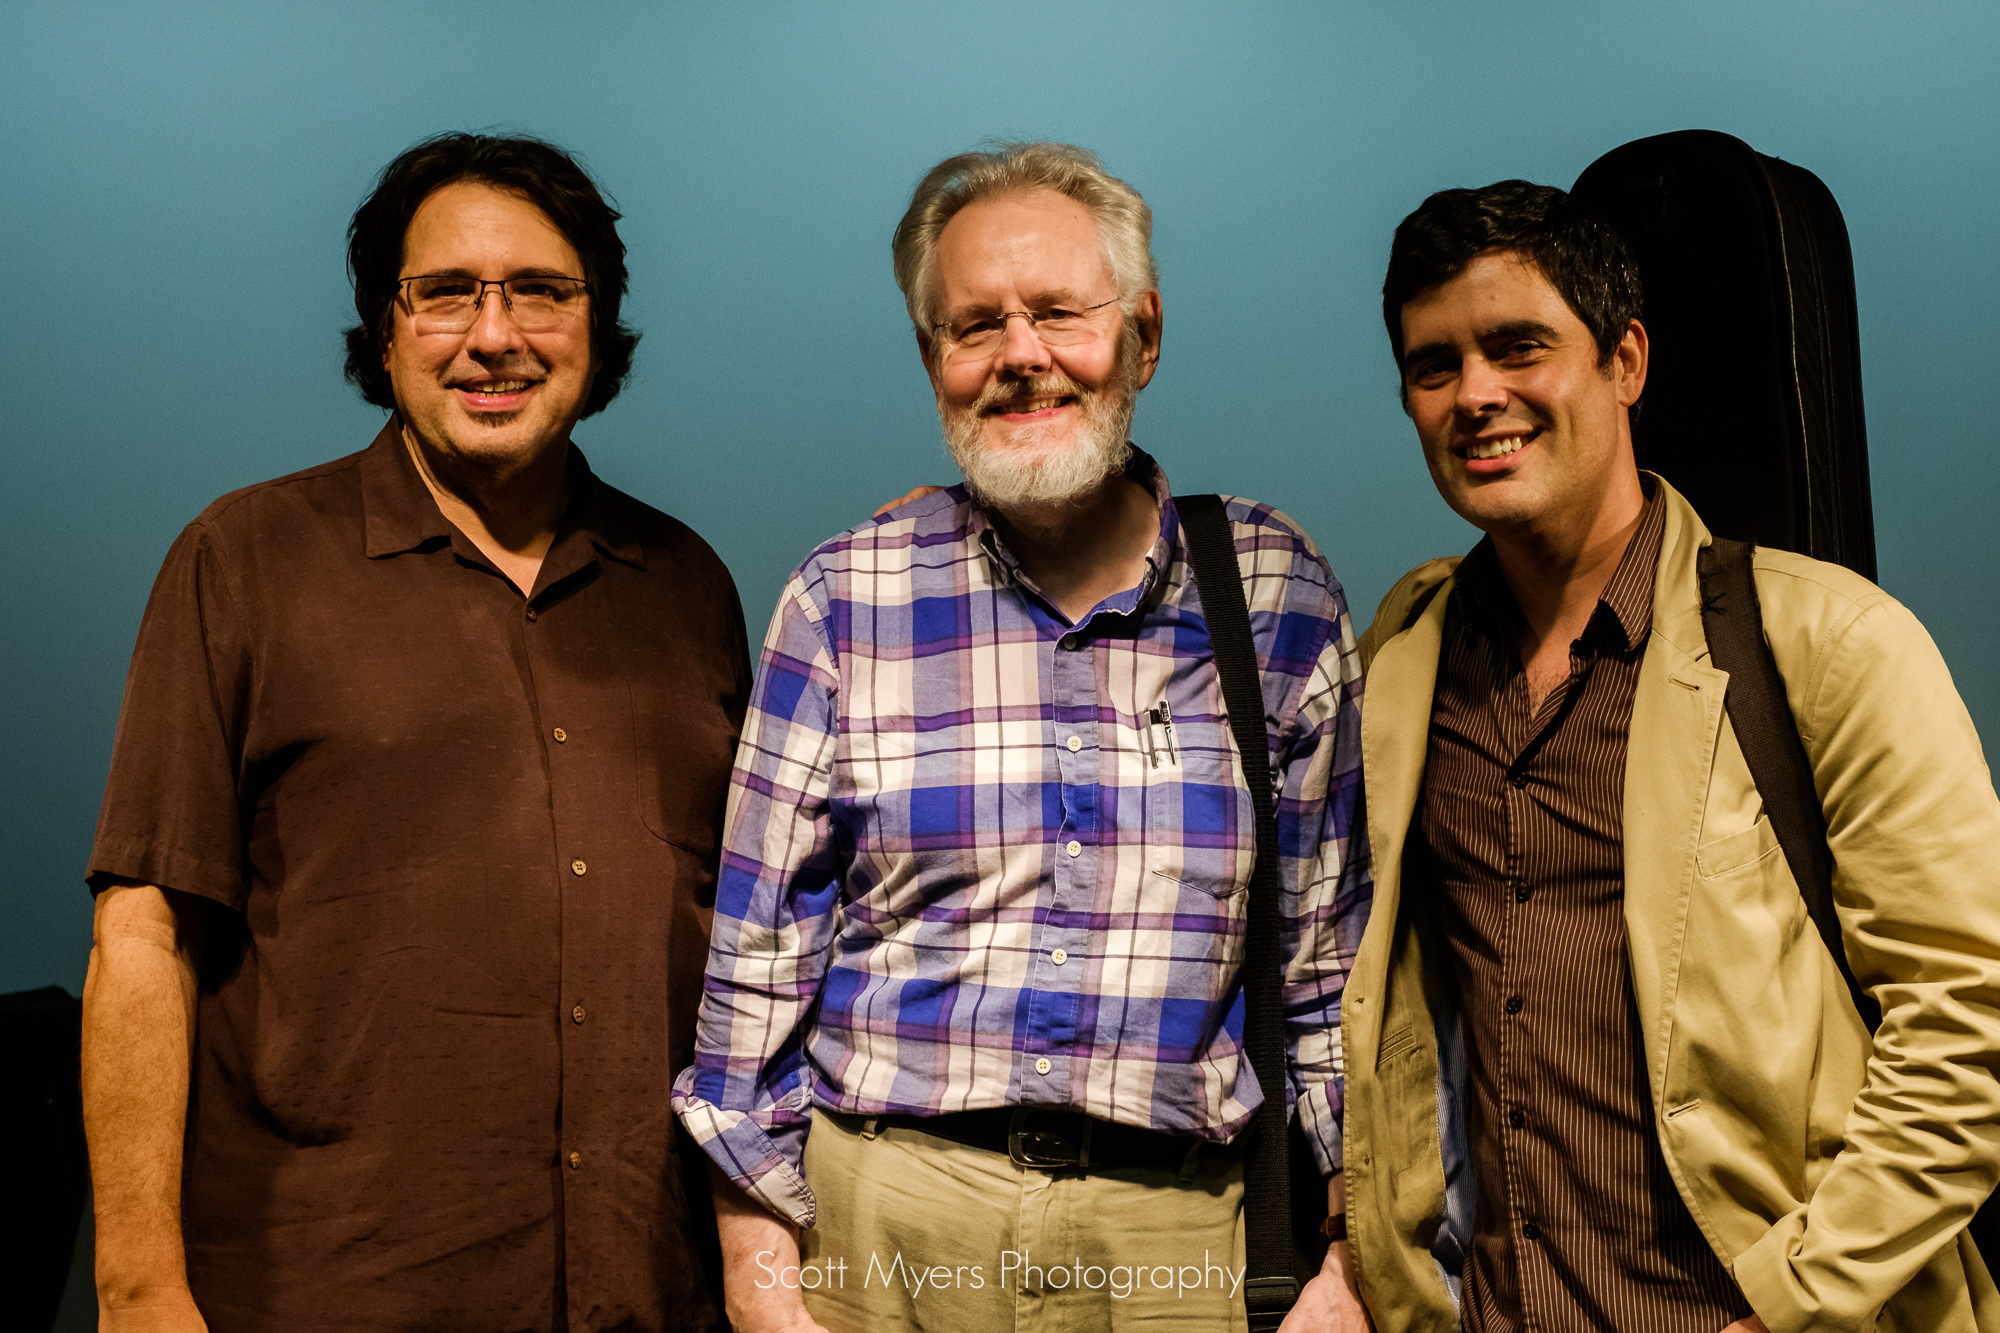 Steve Masakowski, Hank Mackie and Davy Mooney, New Orleans jazz guitarists